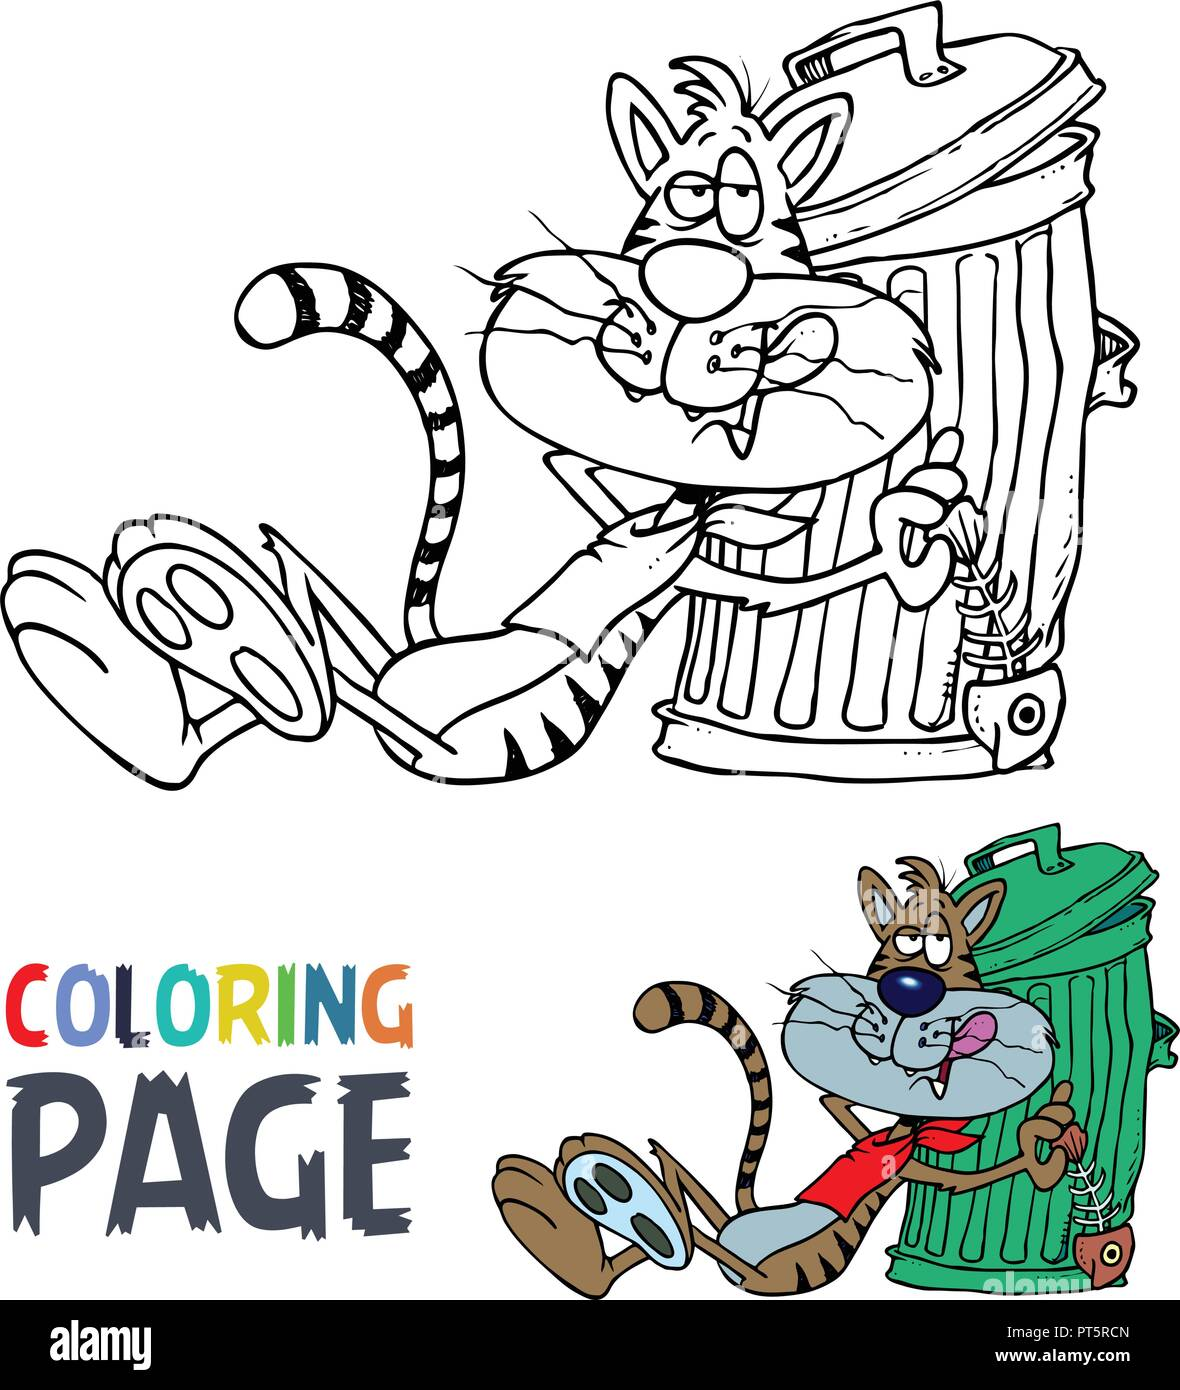 Kitten Puppy Cat Colouring Pages Coloring book, cat in the hat ... | 1390x1180